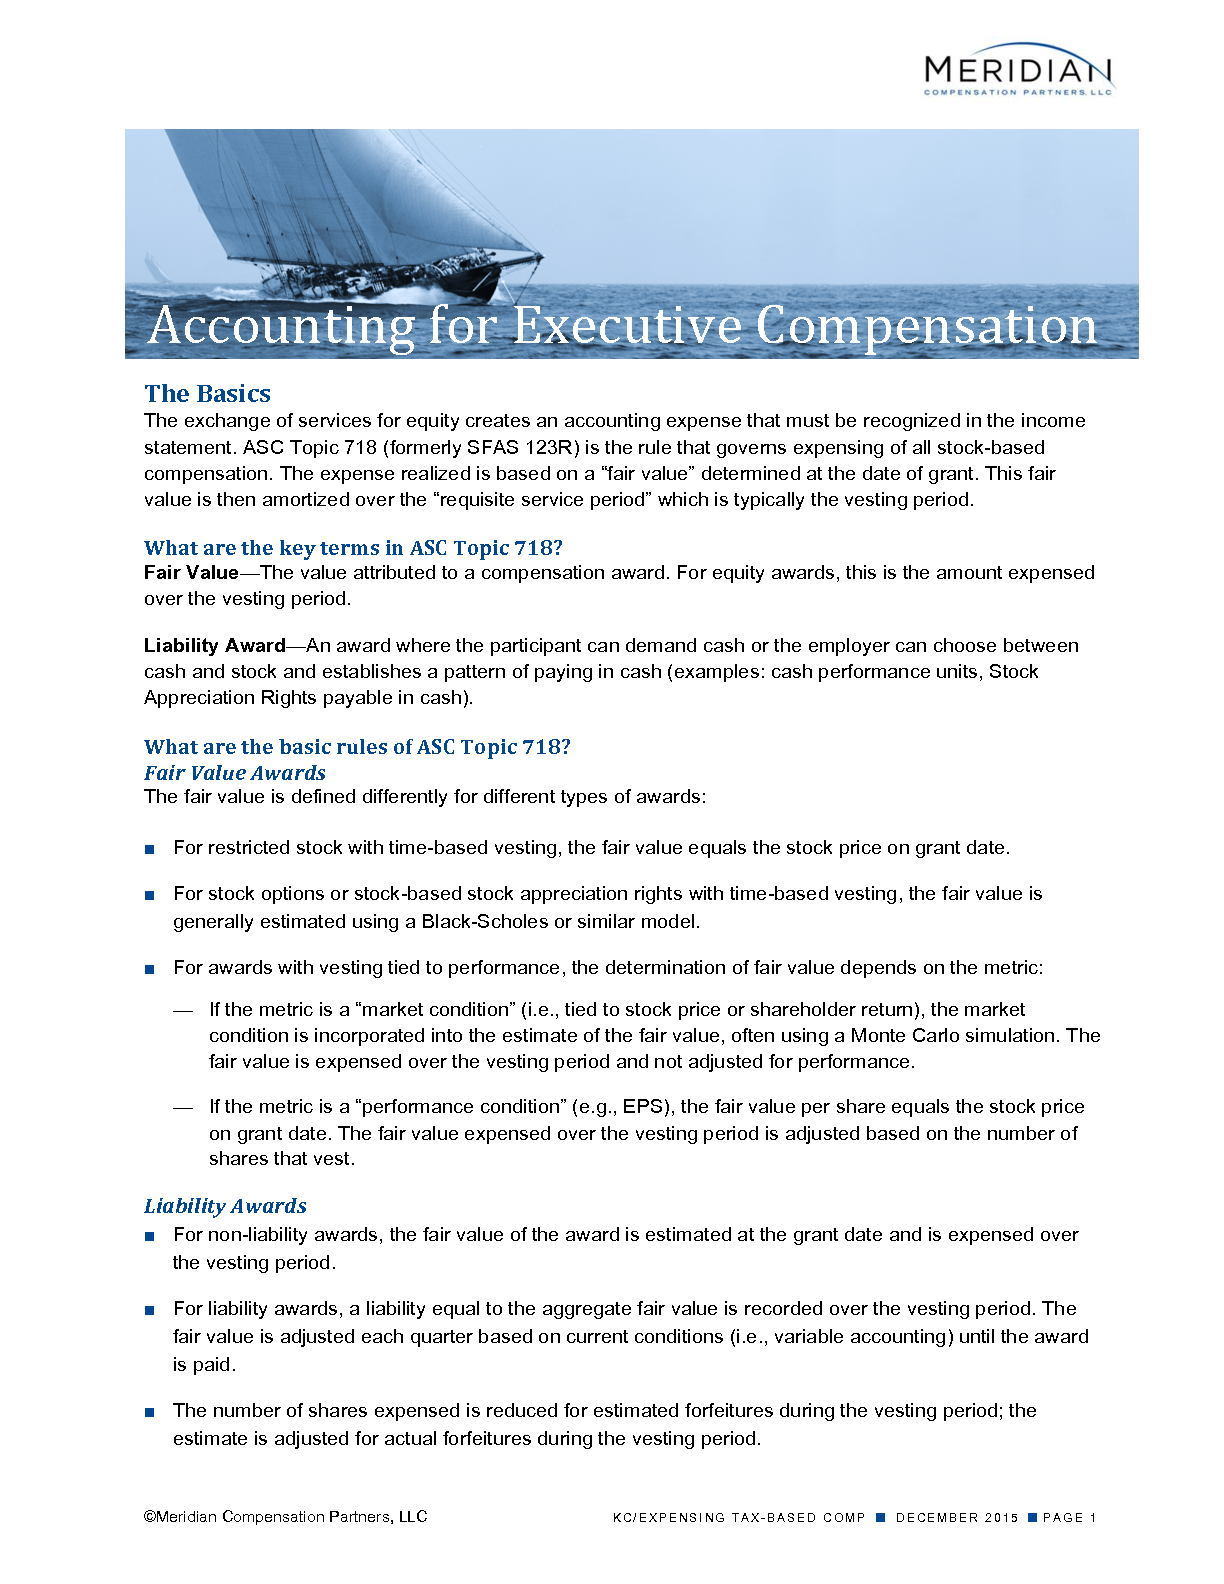 Accounting for Executive Compensation (PDF)